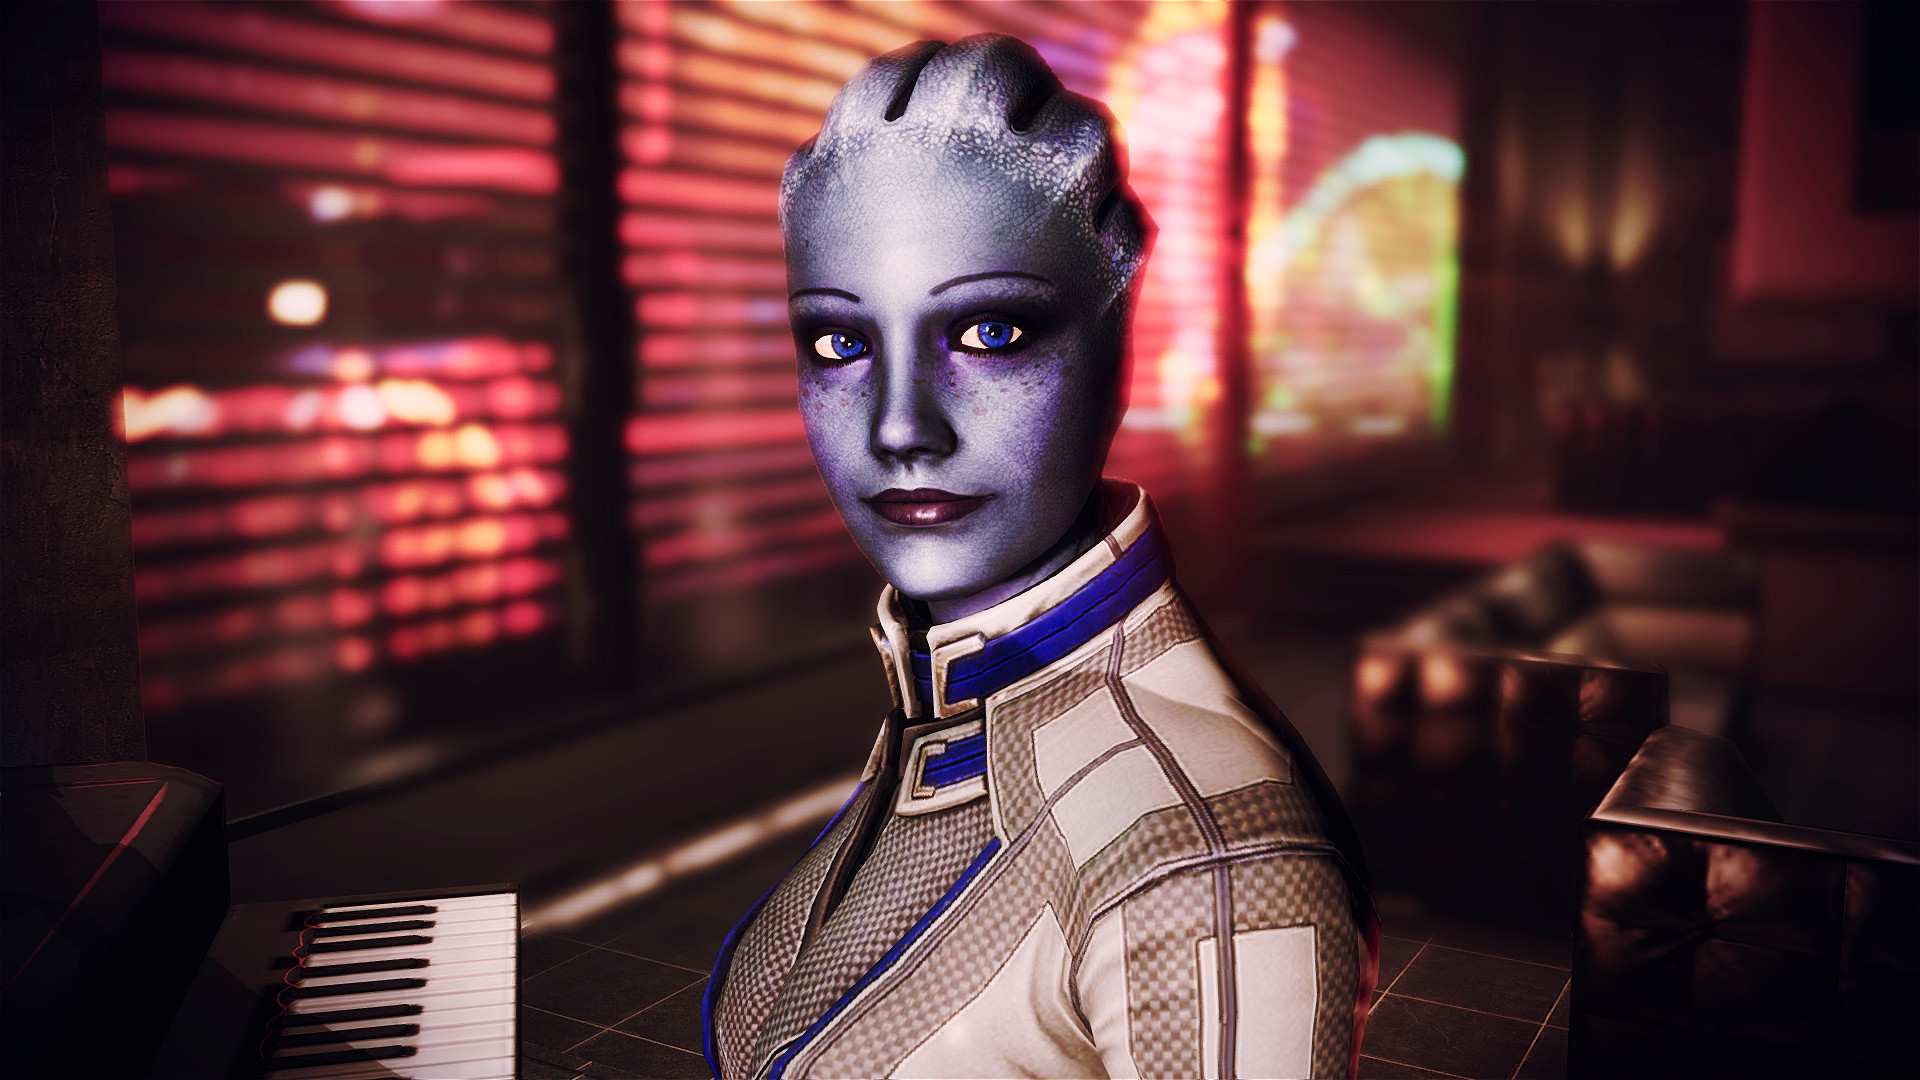 Liara T'Soni 41 by johntesh